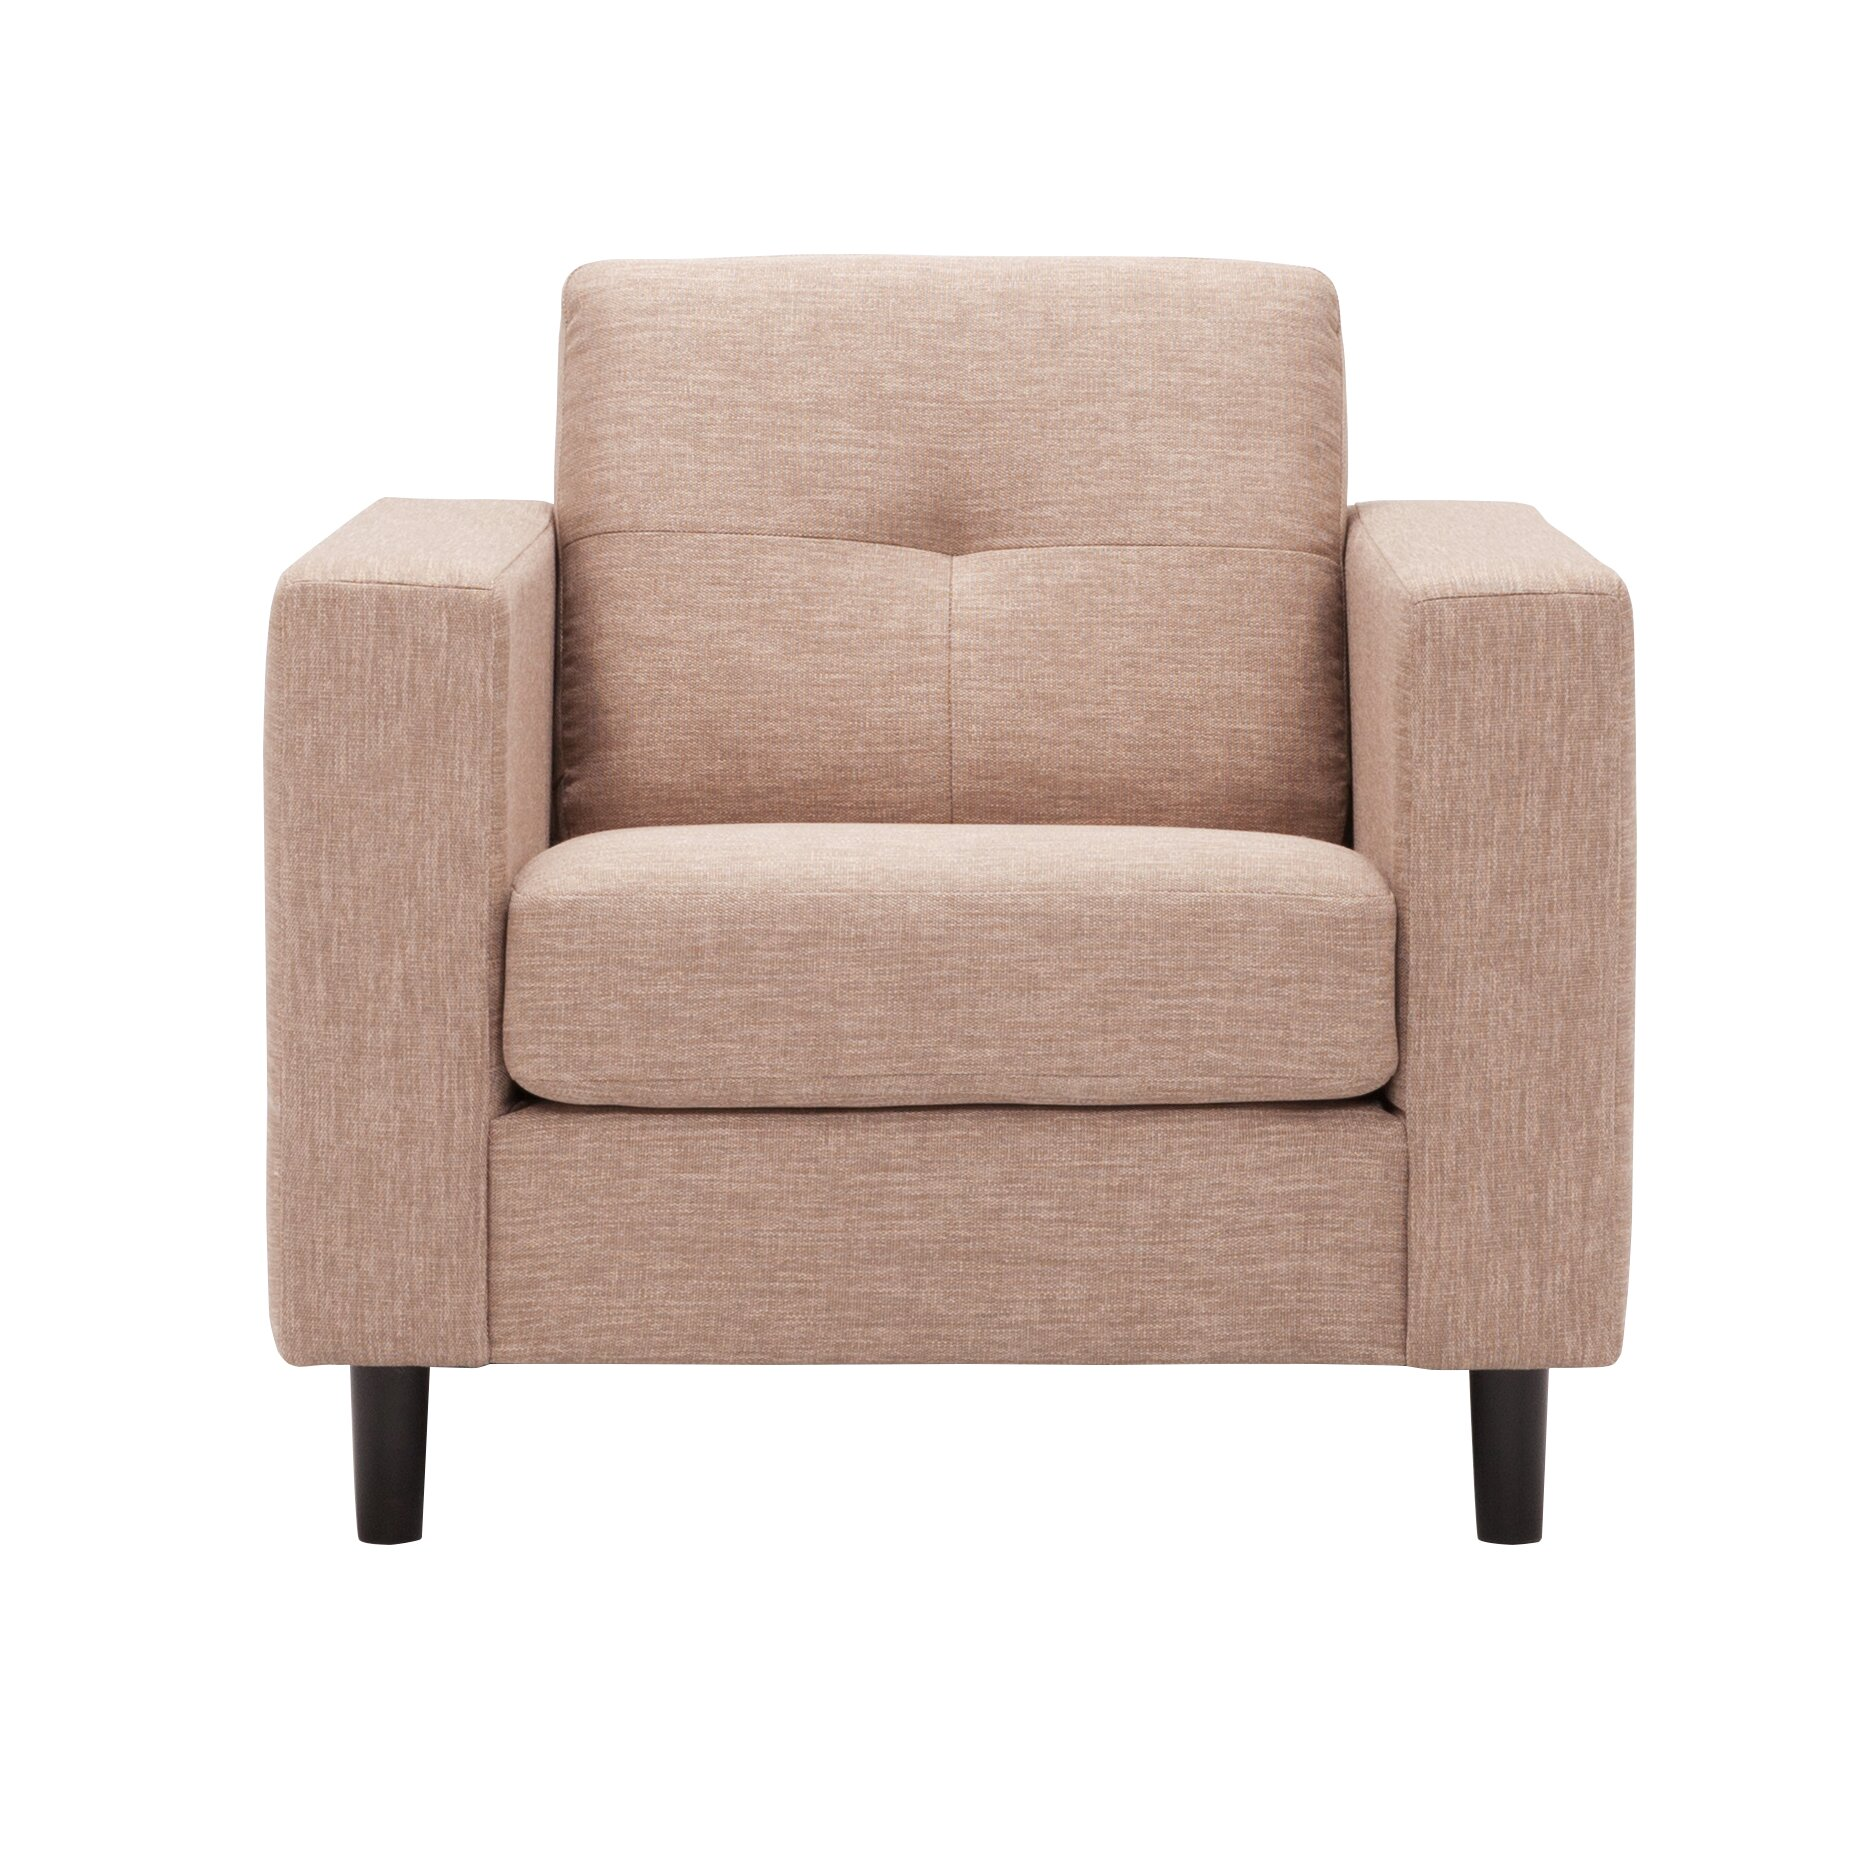 eq3 solo chair wayfair